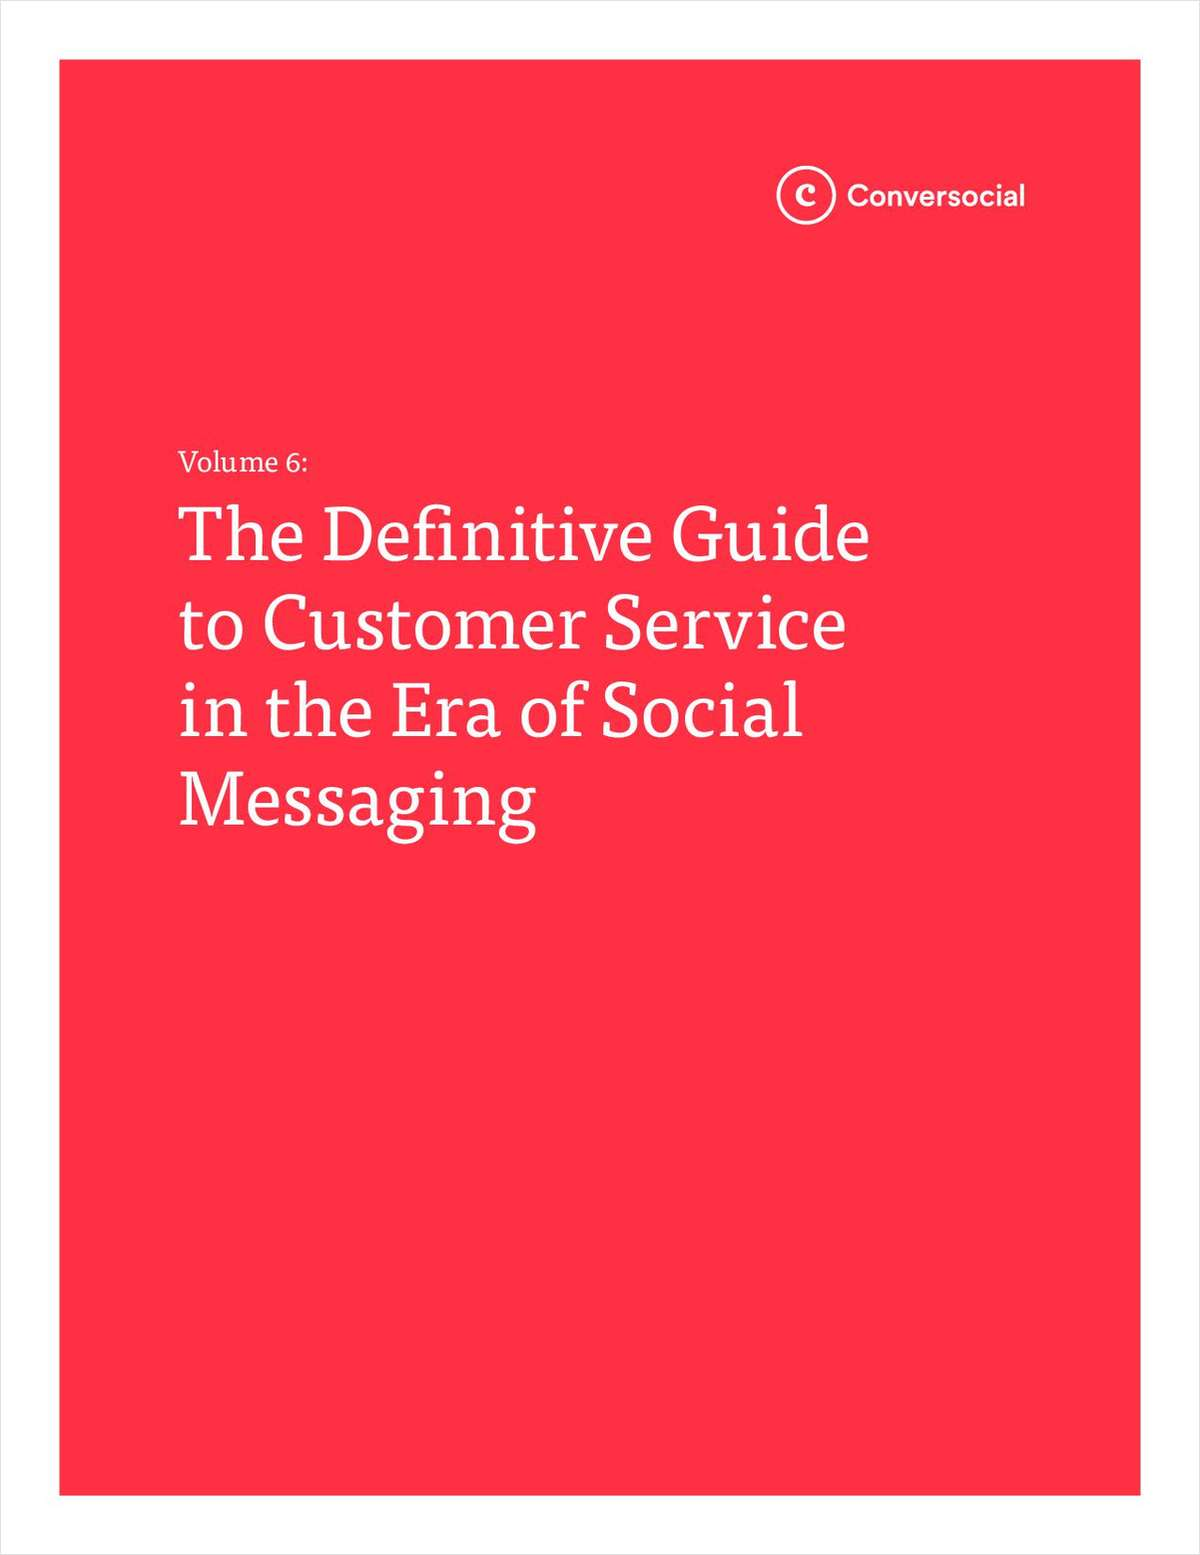 The Definitive Guide to Customer Service in the Era of Social Messaging